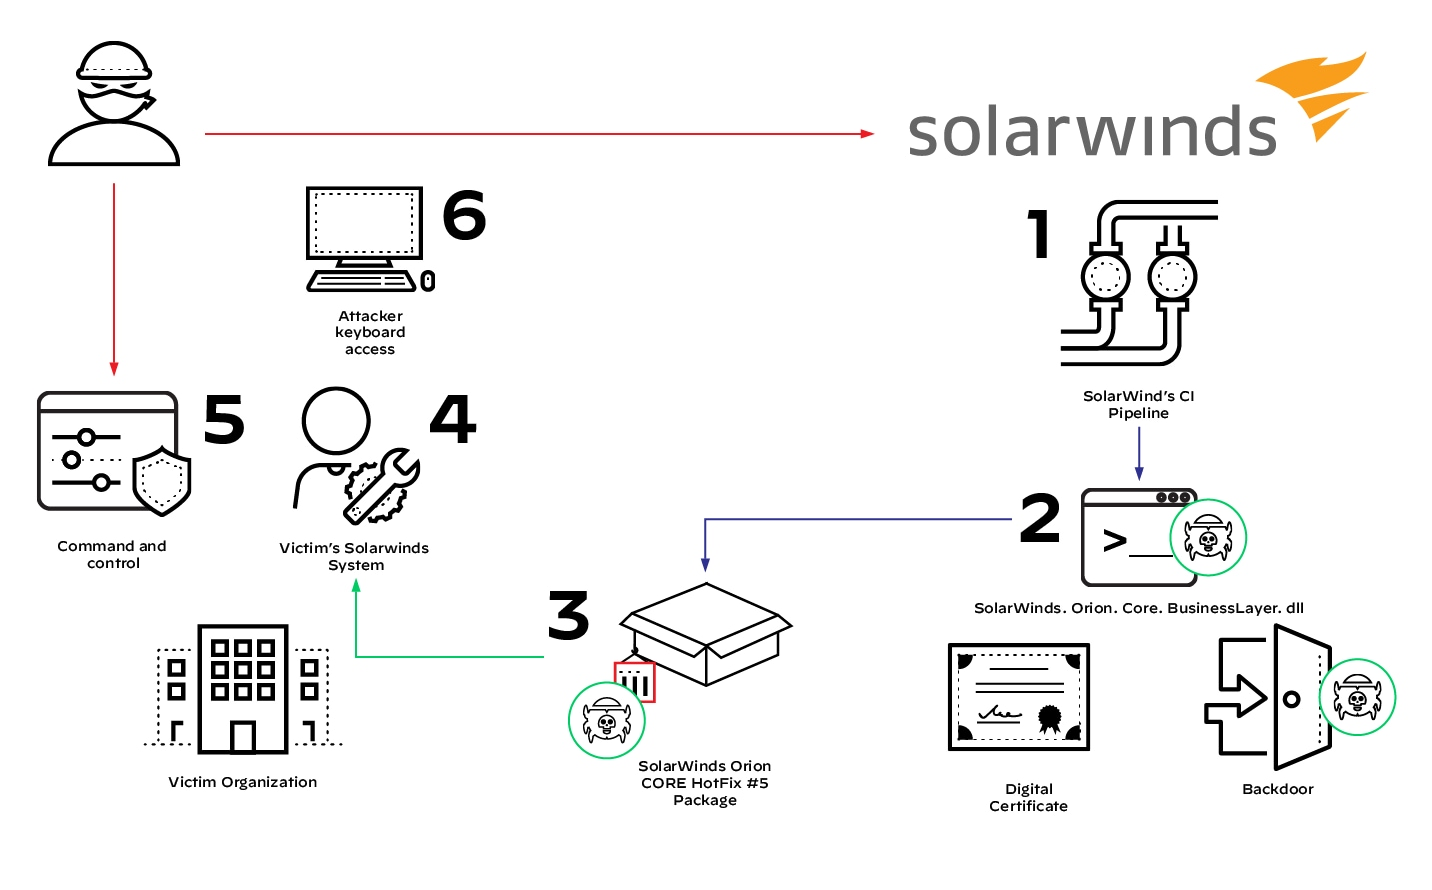 Path of attack against SolarWinds Orion. 1) SolarWinds CI Pipeline, 2) SolarWinds, Orion, Core, Business Layer dll, digital certificate, backdoor, 3) SolarWinds Orion CORE HotFix #5 Package, 4) Victim's SolarWinds system, 5) command and control, 6) Attacker keyboard access.